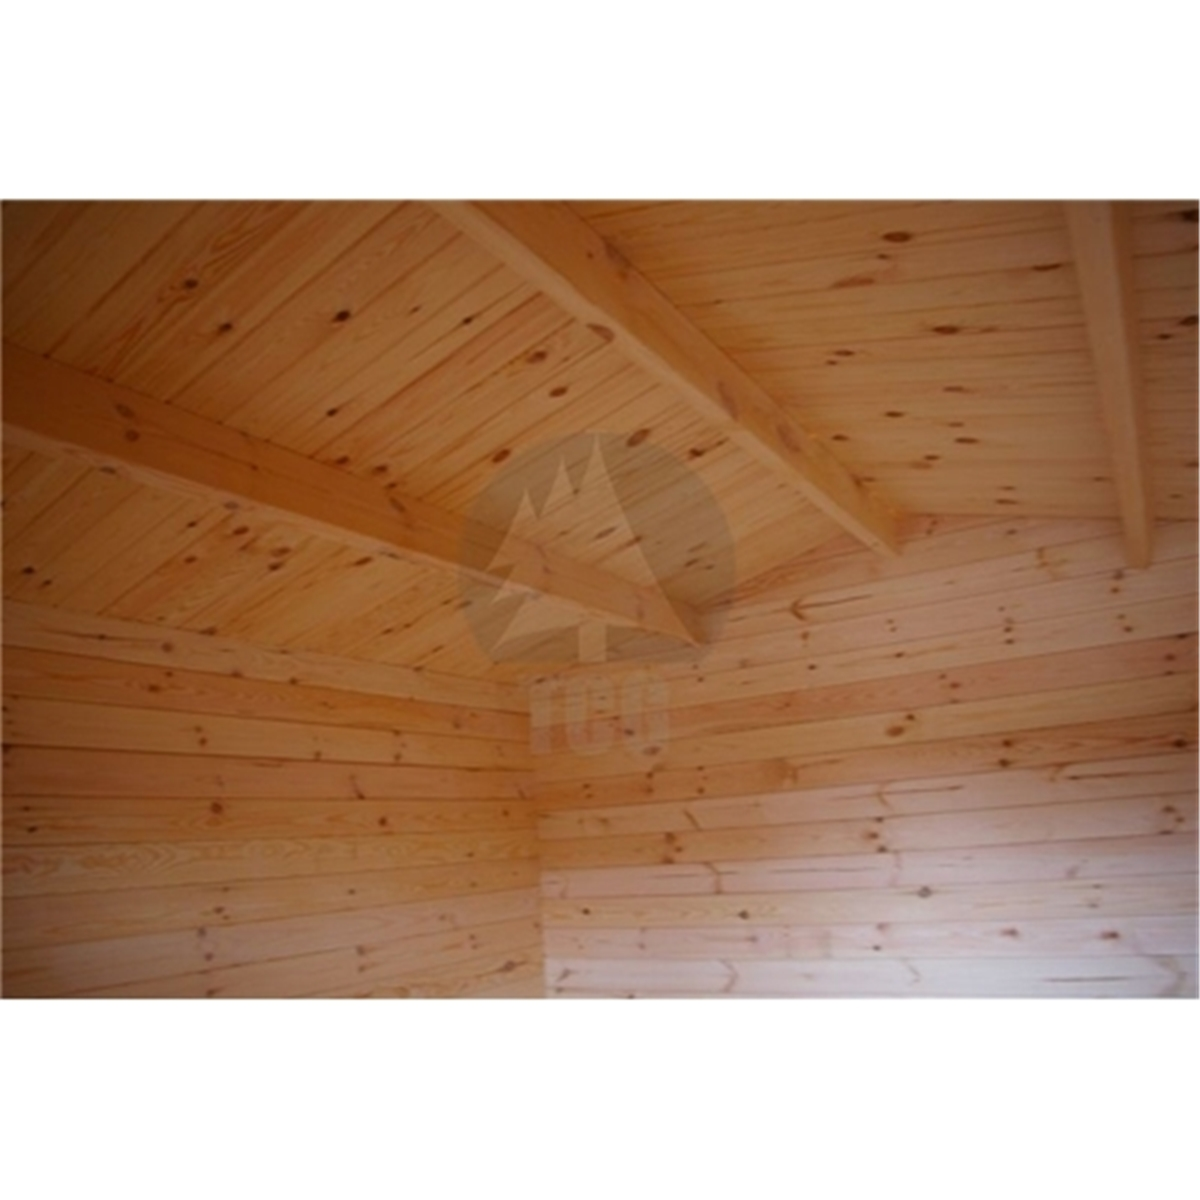 Marvelous photograph of Uppingham Log Cabins : 5m x 3m (16 x 10) Apex Log Cabin (2089  with #4E2308 color and 1200x1200 pixels